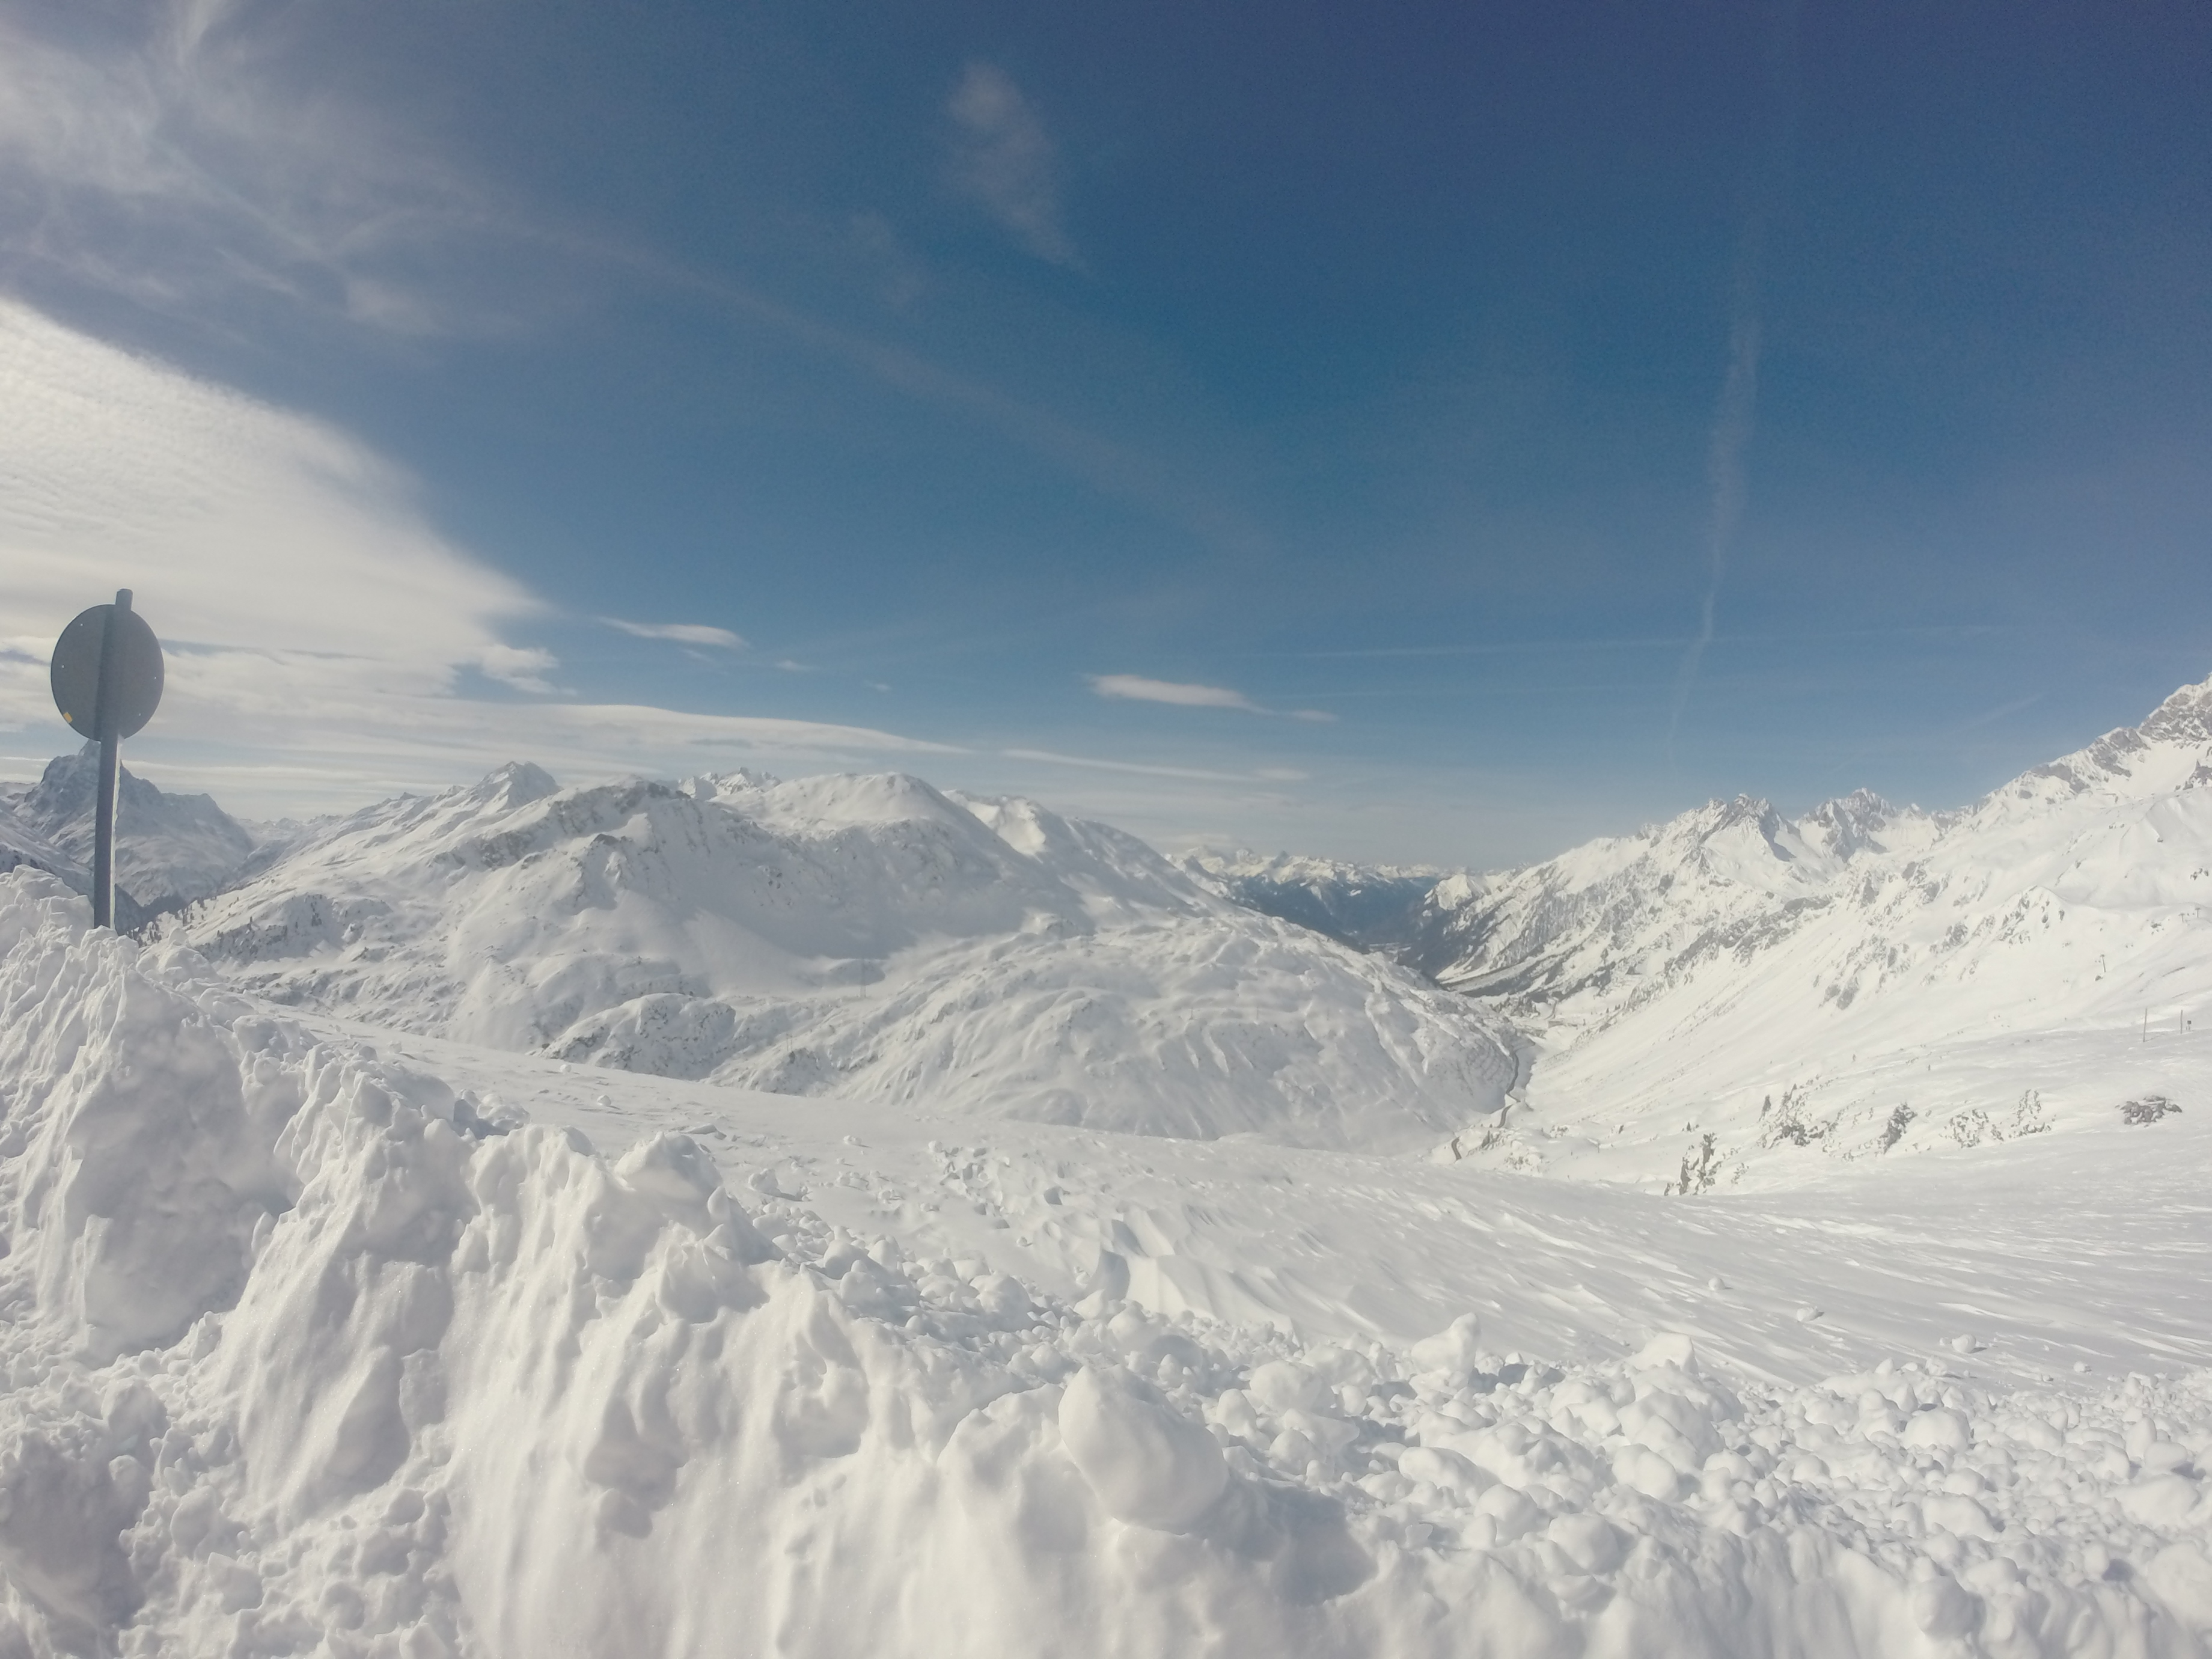 The day after the night of snow, St. Anton